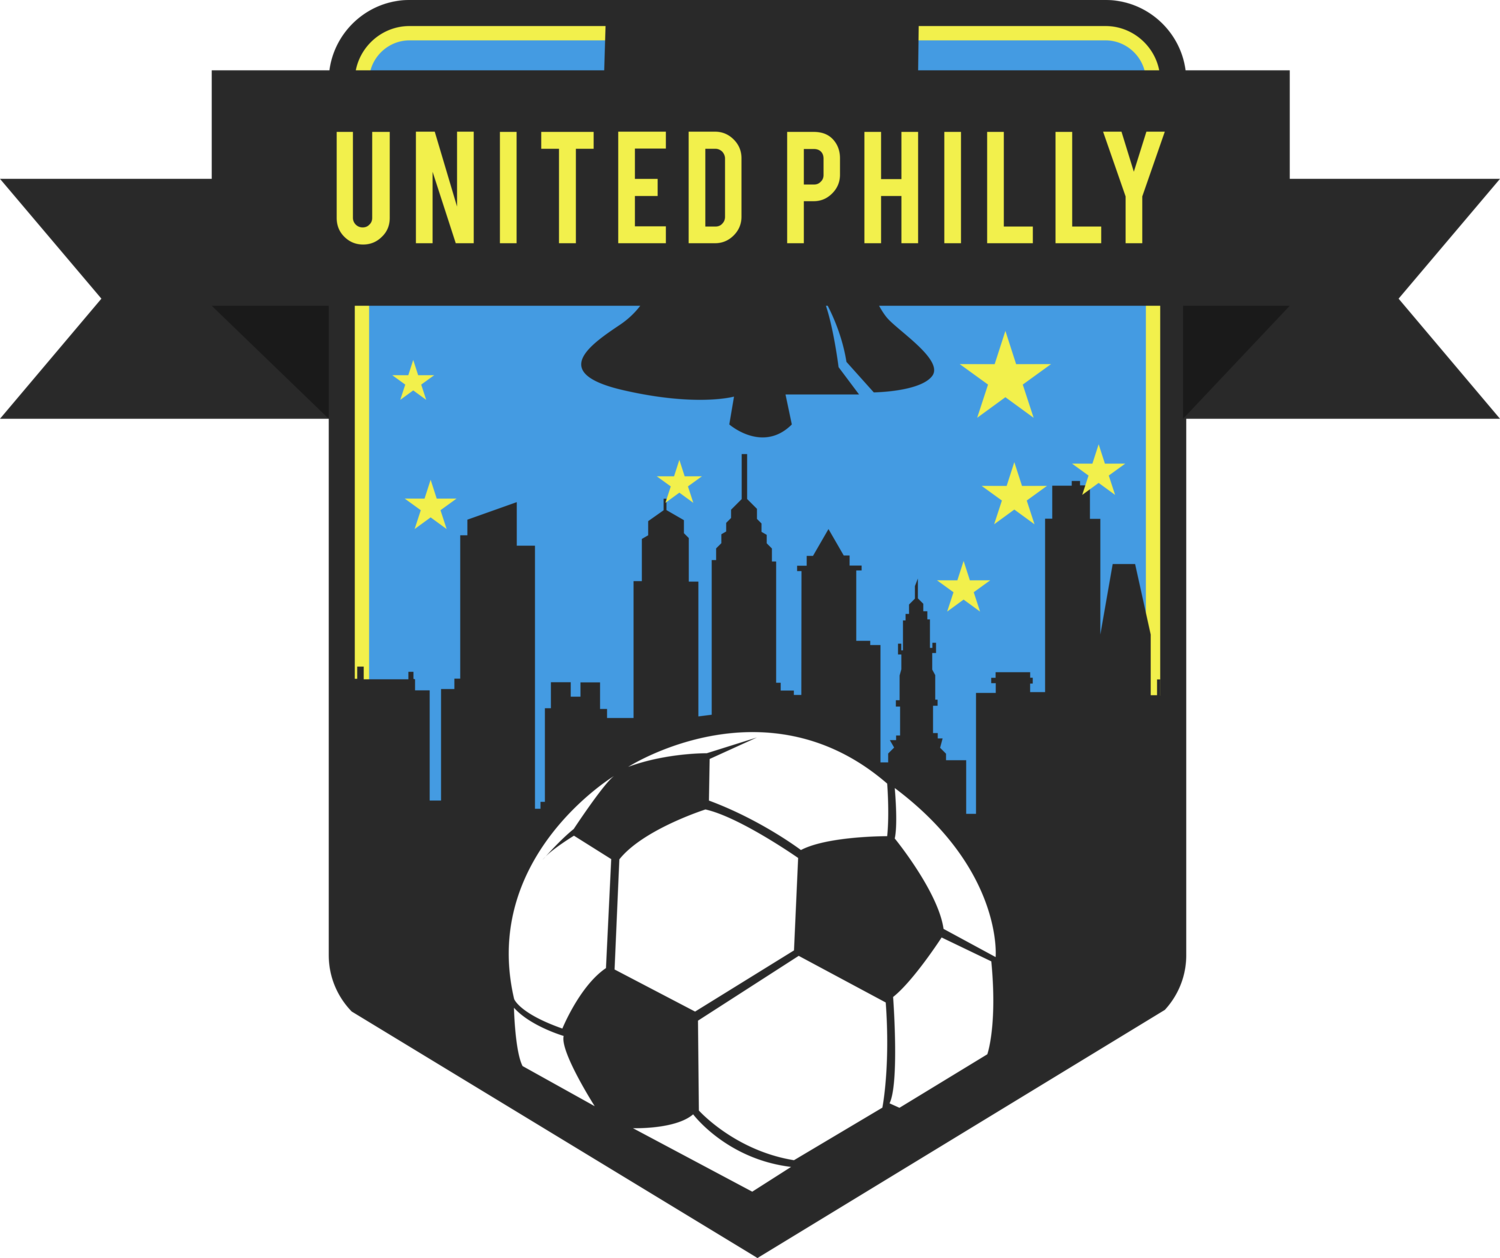 Vision clipart team goal. Affiliate clubs united philly